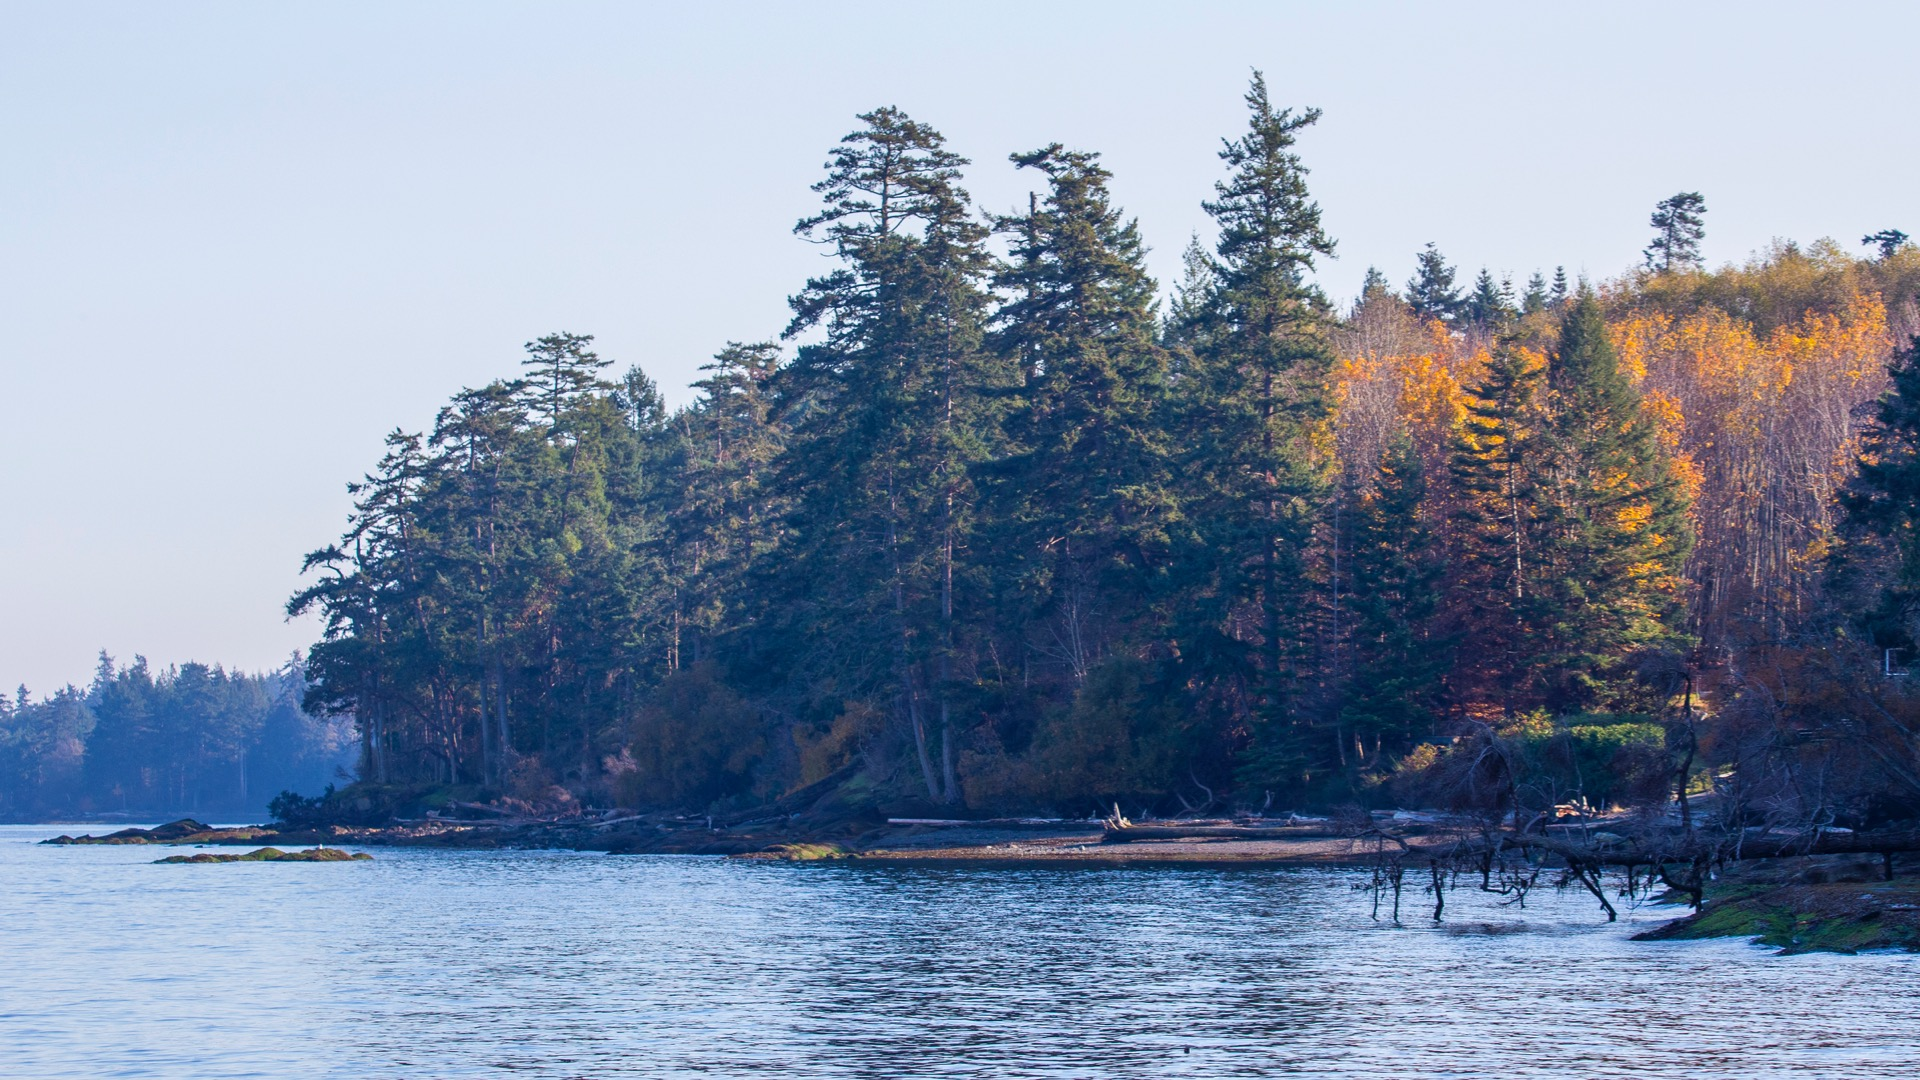 There was still some fall colour on the leaves down the beach.